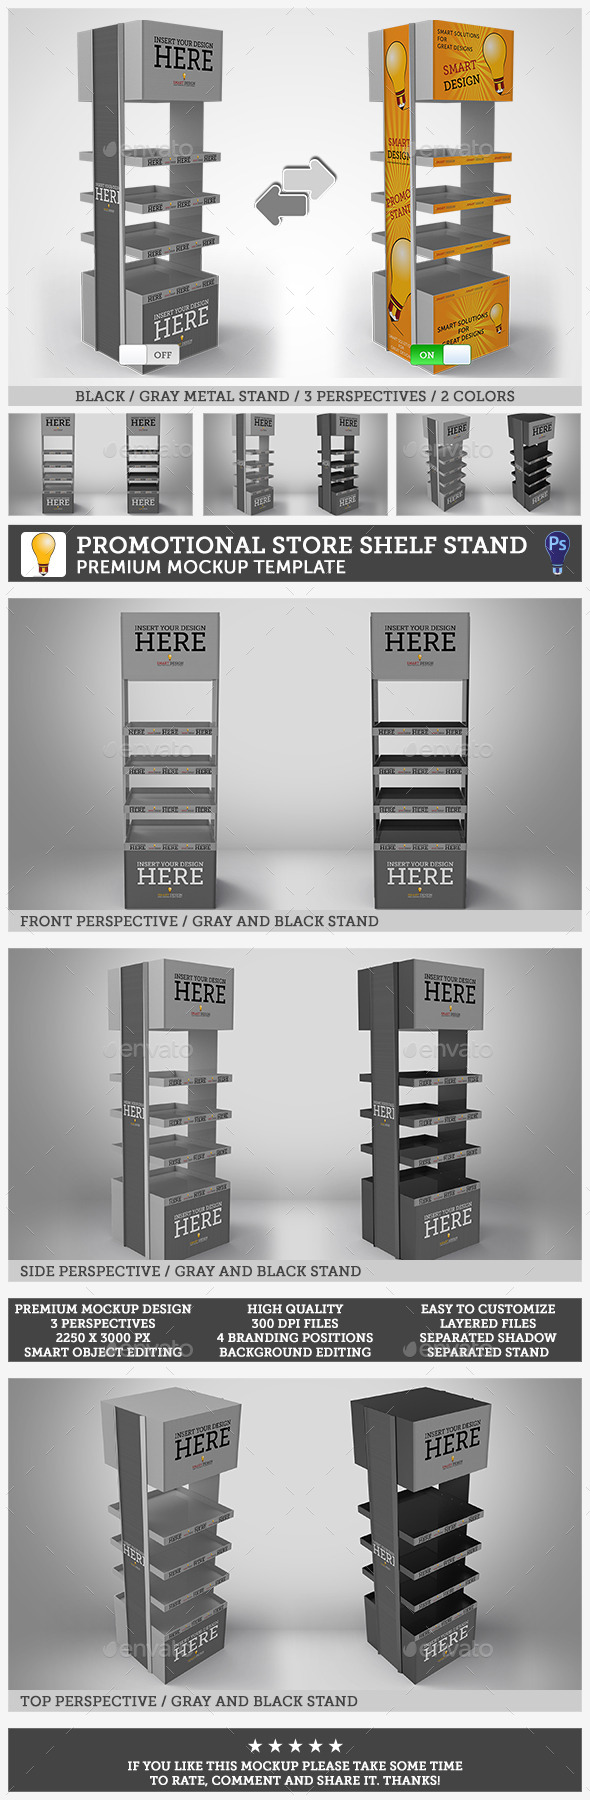 GraphicRiver Promotional Store Shelf Stand 11110807